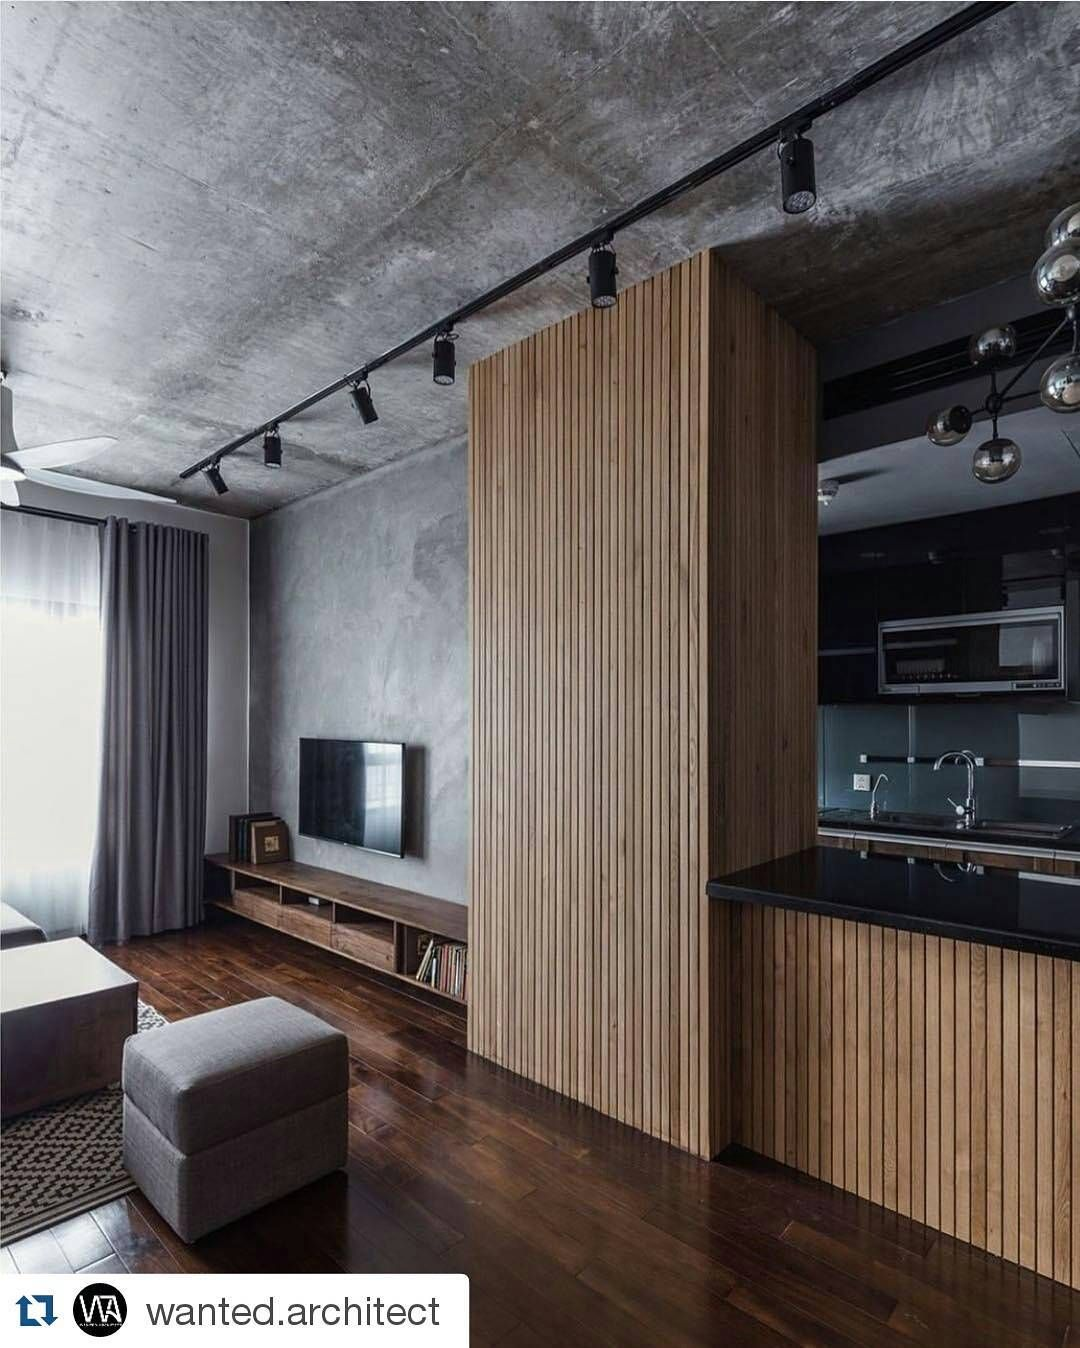 Concrete U0026 Timber Filled Apartment Designed By Le Studio 💭 Featuring  Floating Timber Cabinetry U0026 Panelling With Matte Black Track Lights 📷 ~  Home Adore ... Gallery